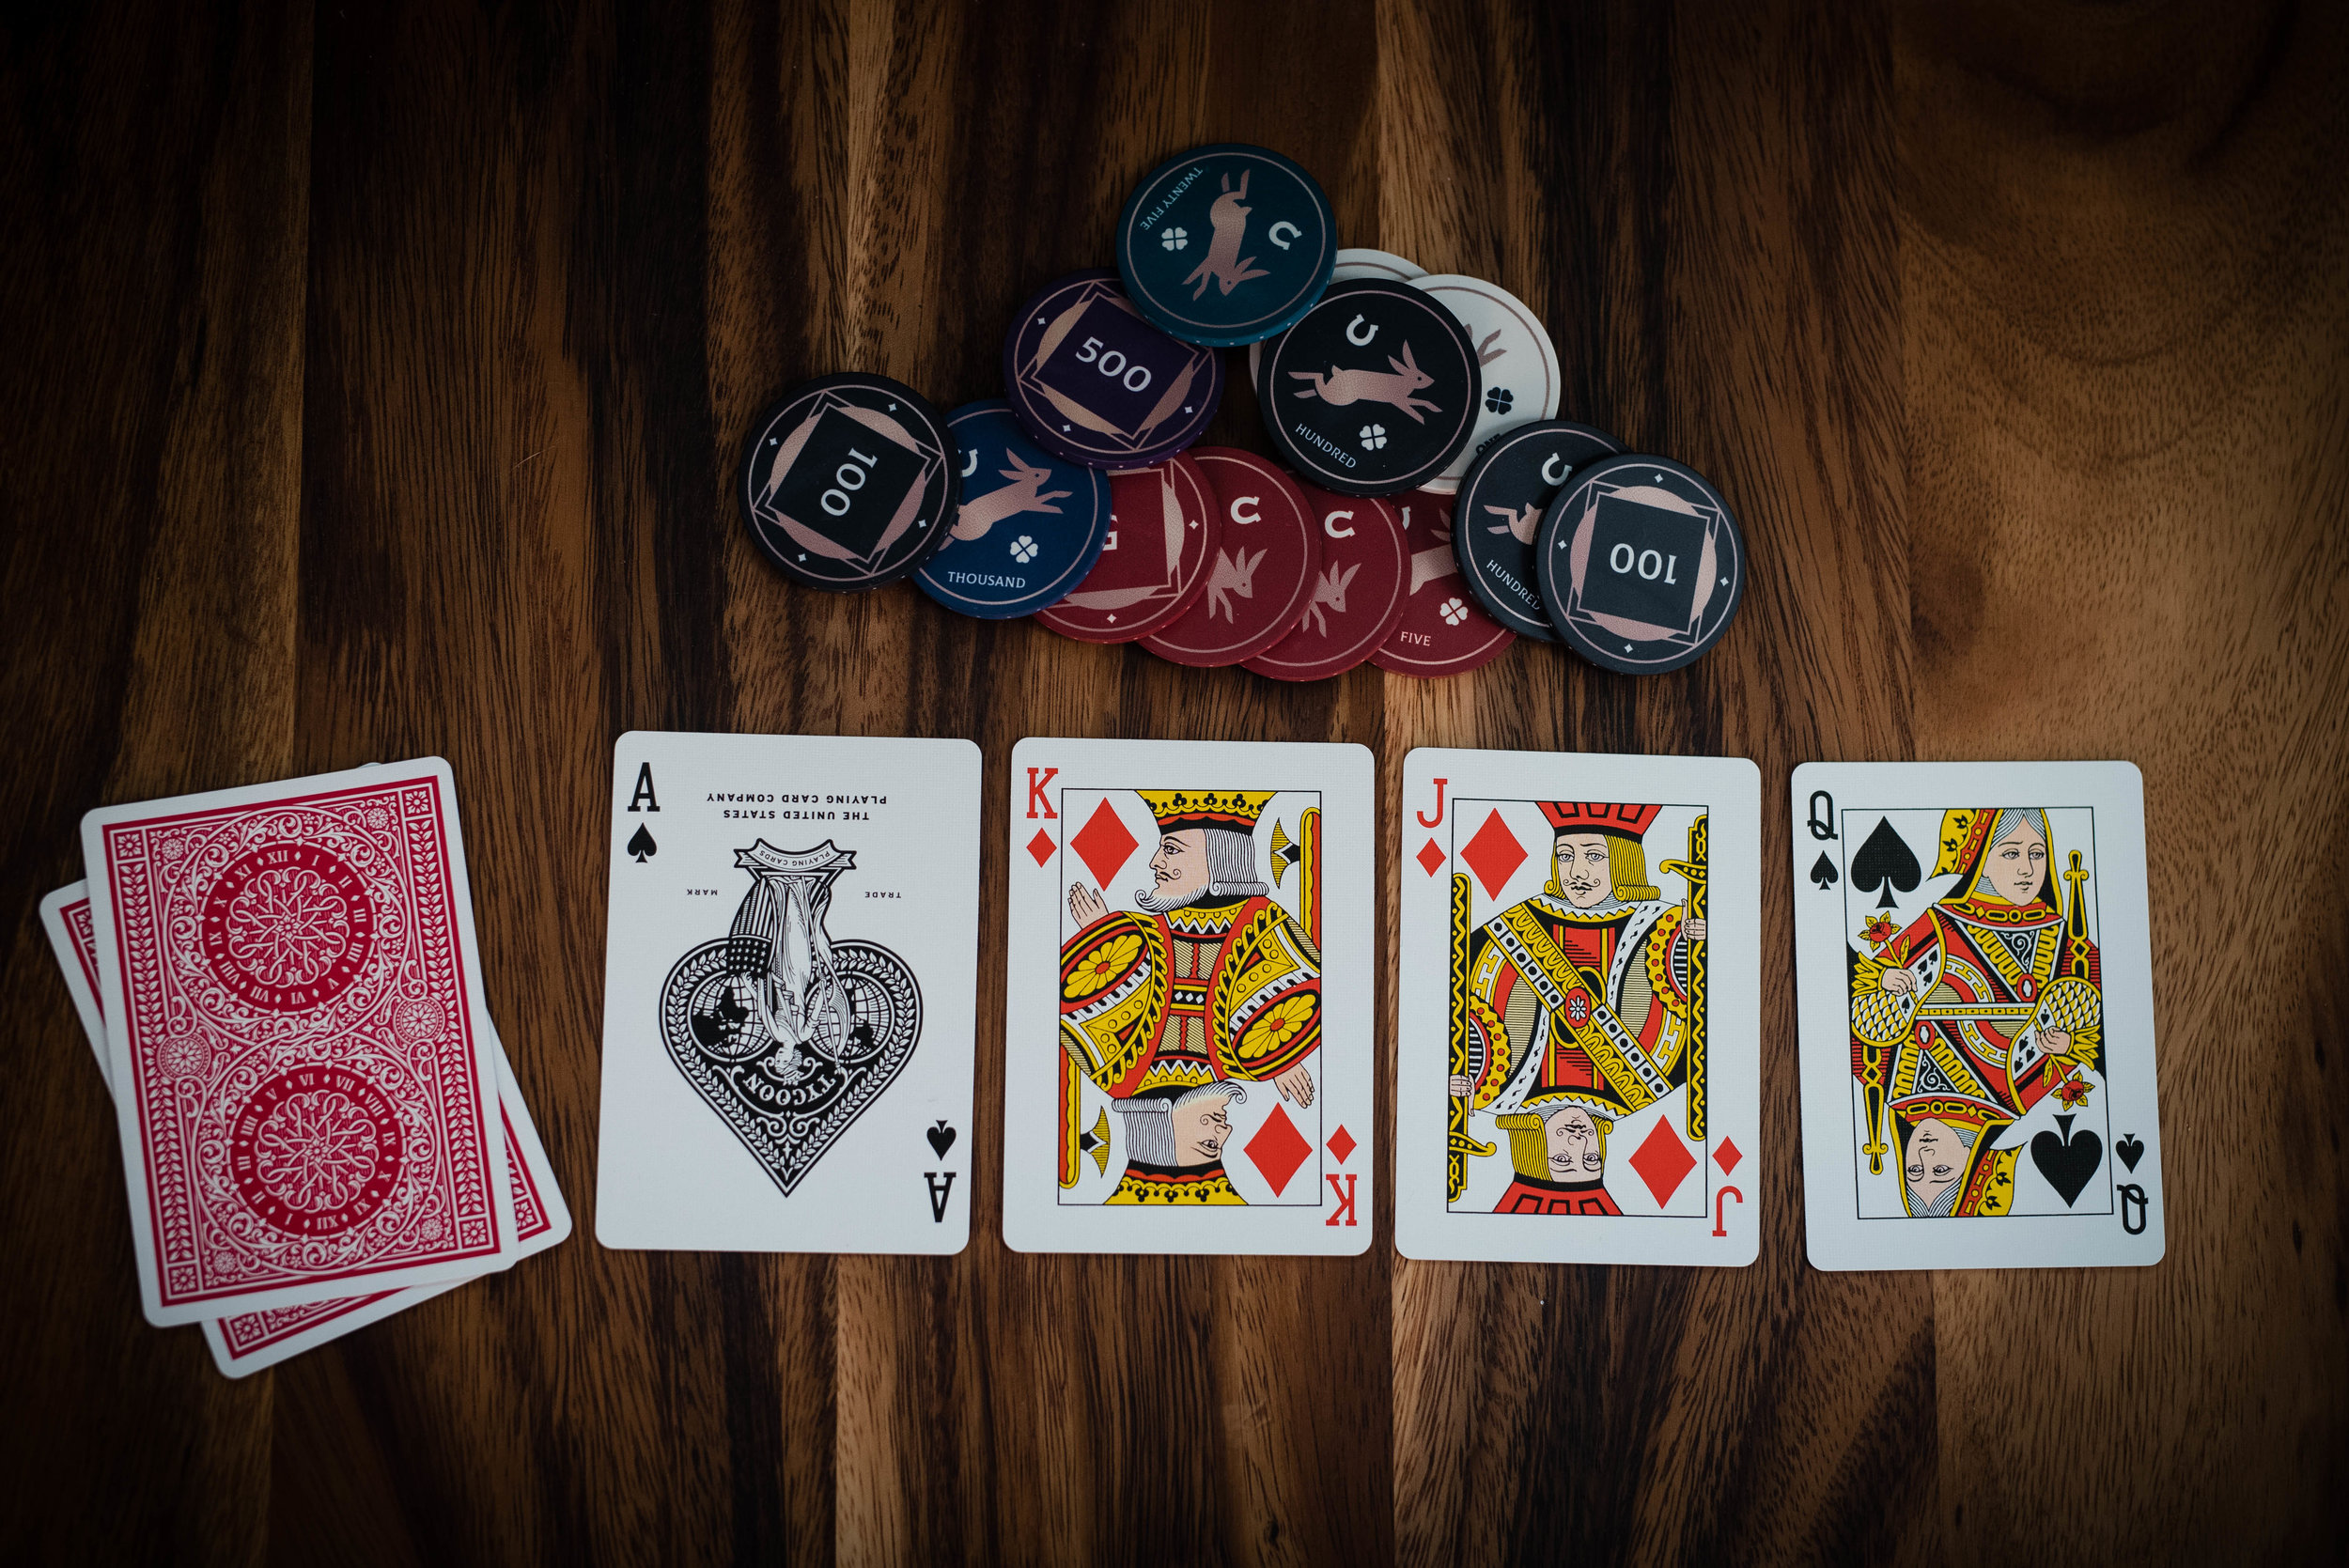 It all started with… - An idea to create a atmosphere to enjoy Poker. No matter your skill level you will have a pleasant time here in our club. We have been operating for over a year in Spring, Texas. We have gained the trust of our locals and have catered to our players at every opportunity.